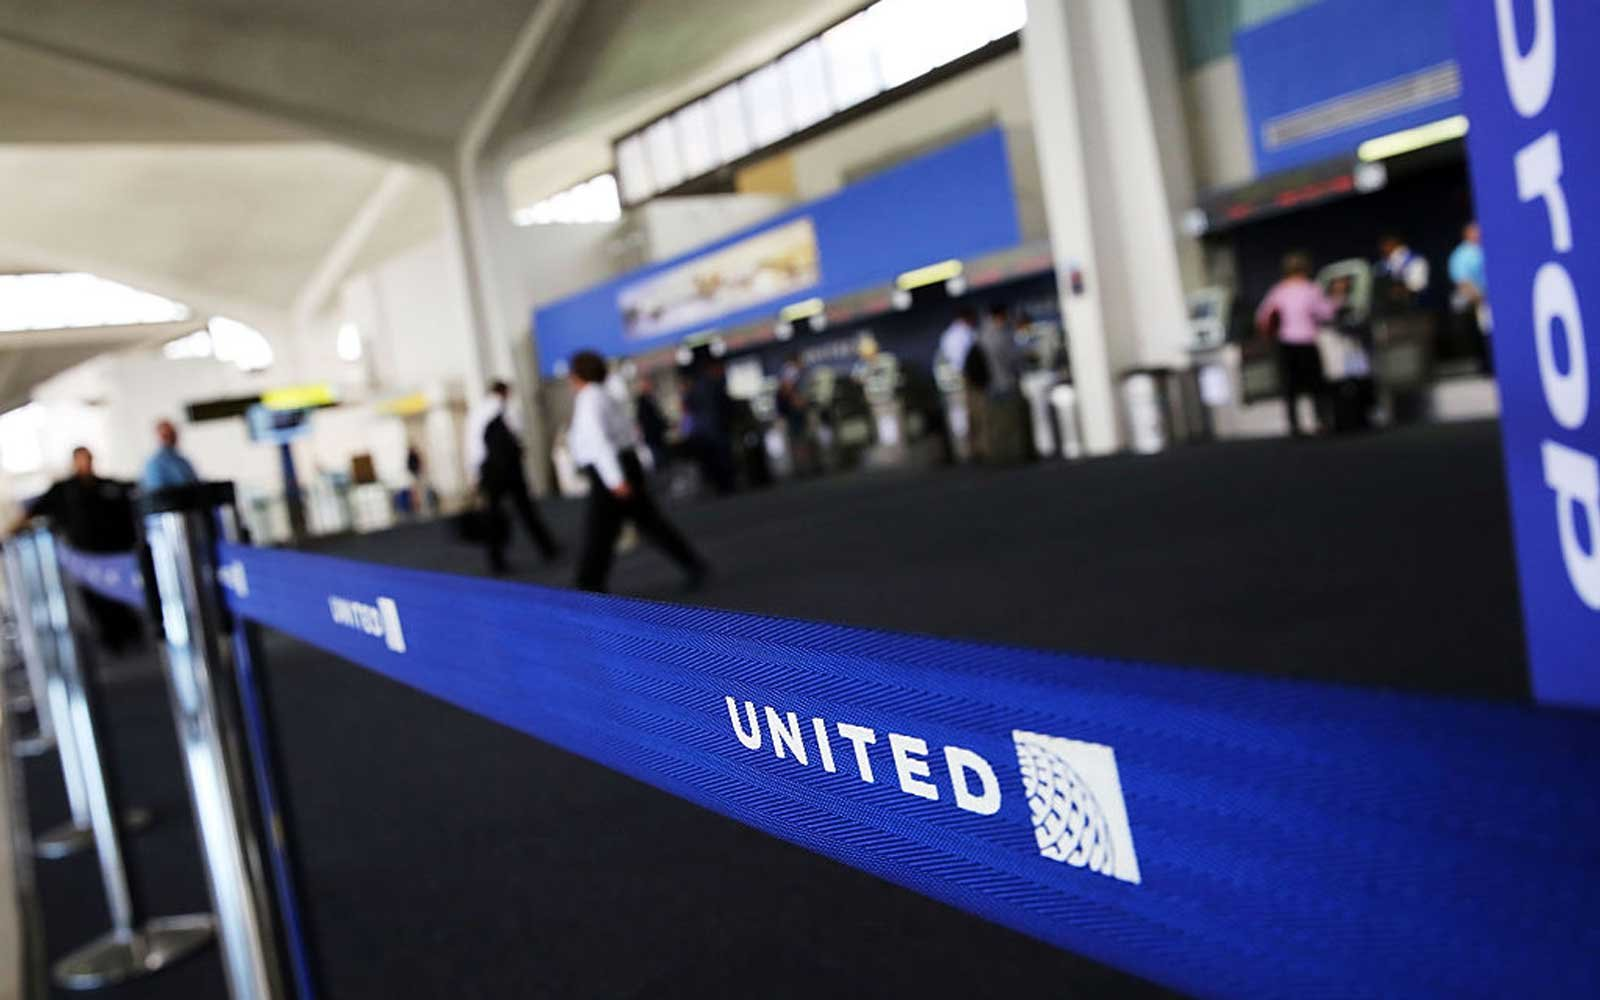 NEWARK, NJ - JULY 08:  The United Airlines terminal is viewed at Newark Liberty Airport on July 8, 2015 in Newark, New Jersey. A computer system glitch caused thousands of United Airlines flights throughout major airports to be grounded Wednesday morning.